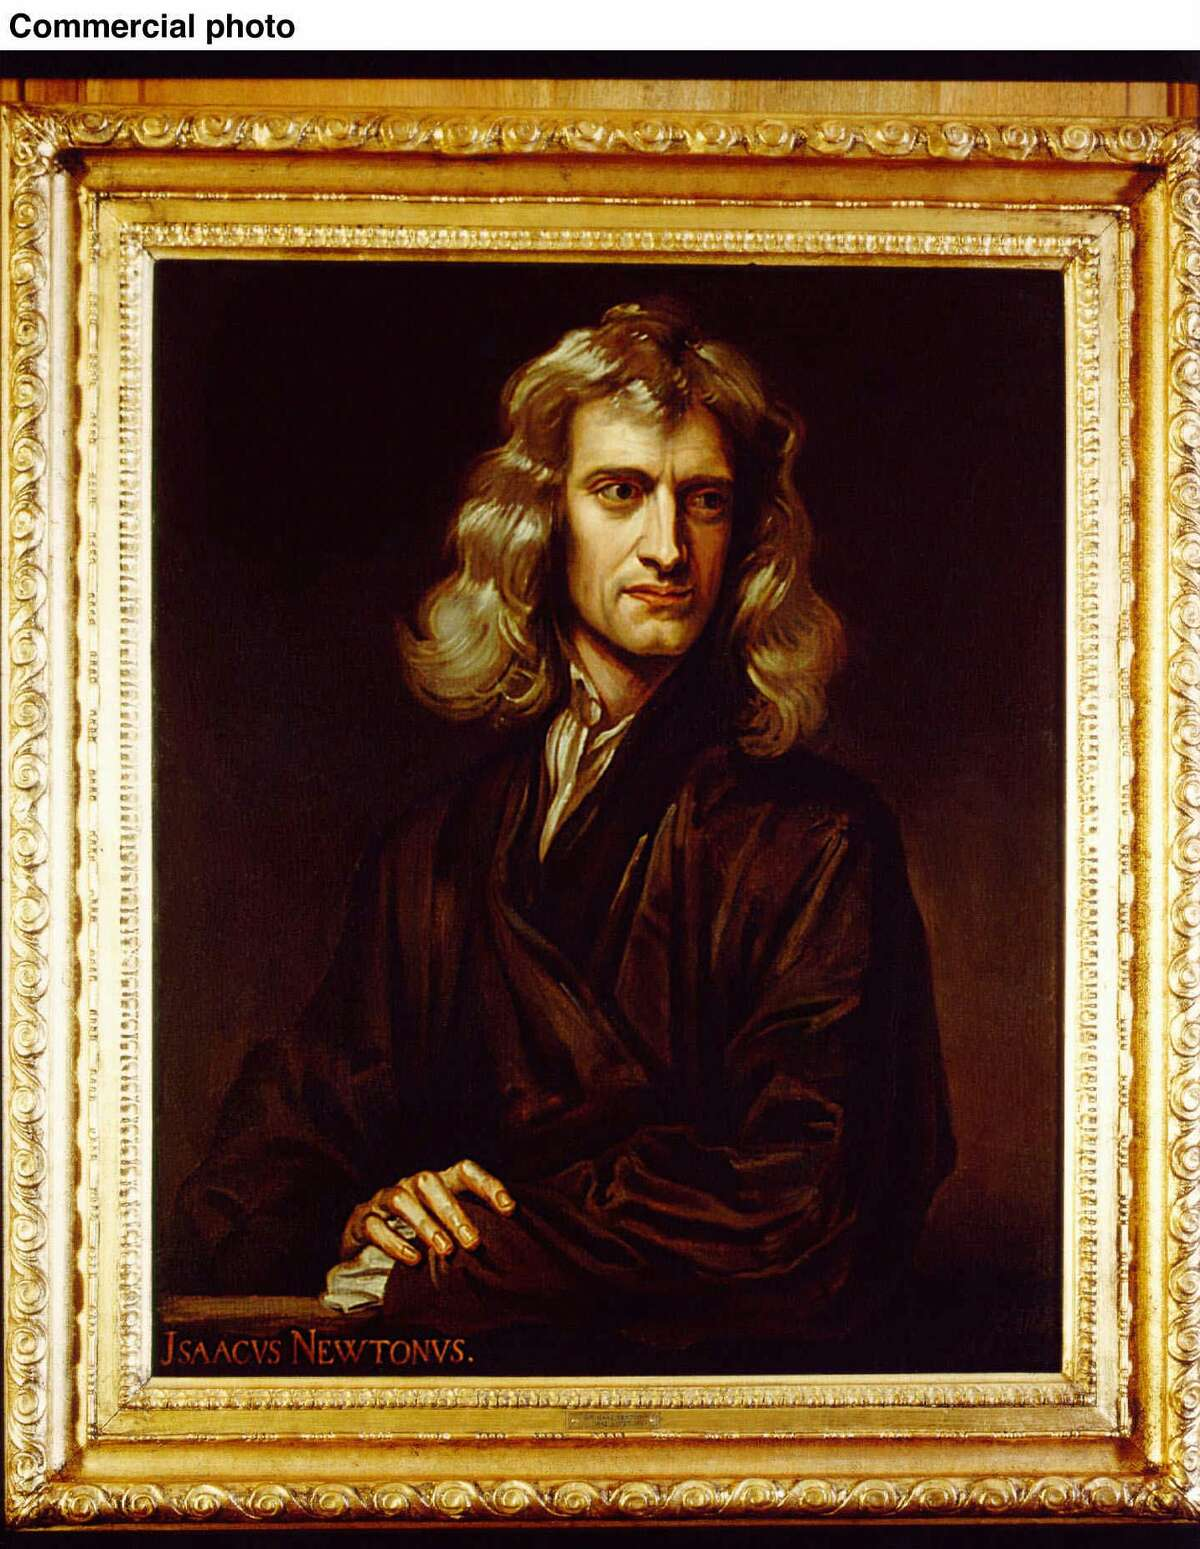 Newton IN 1642, the world got Isaac Newton, the scientist and mathematician who discovered gravity.